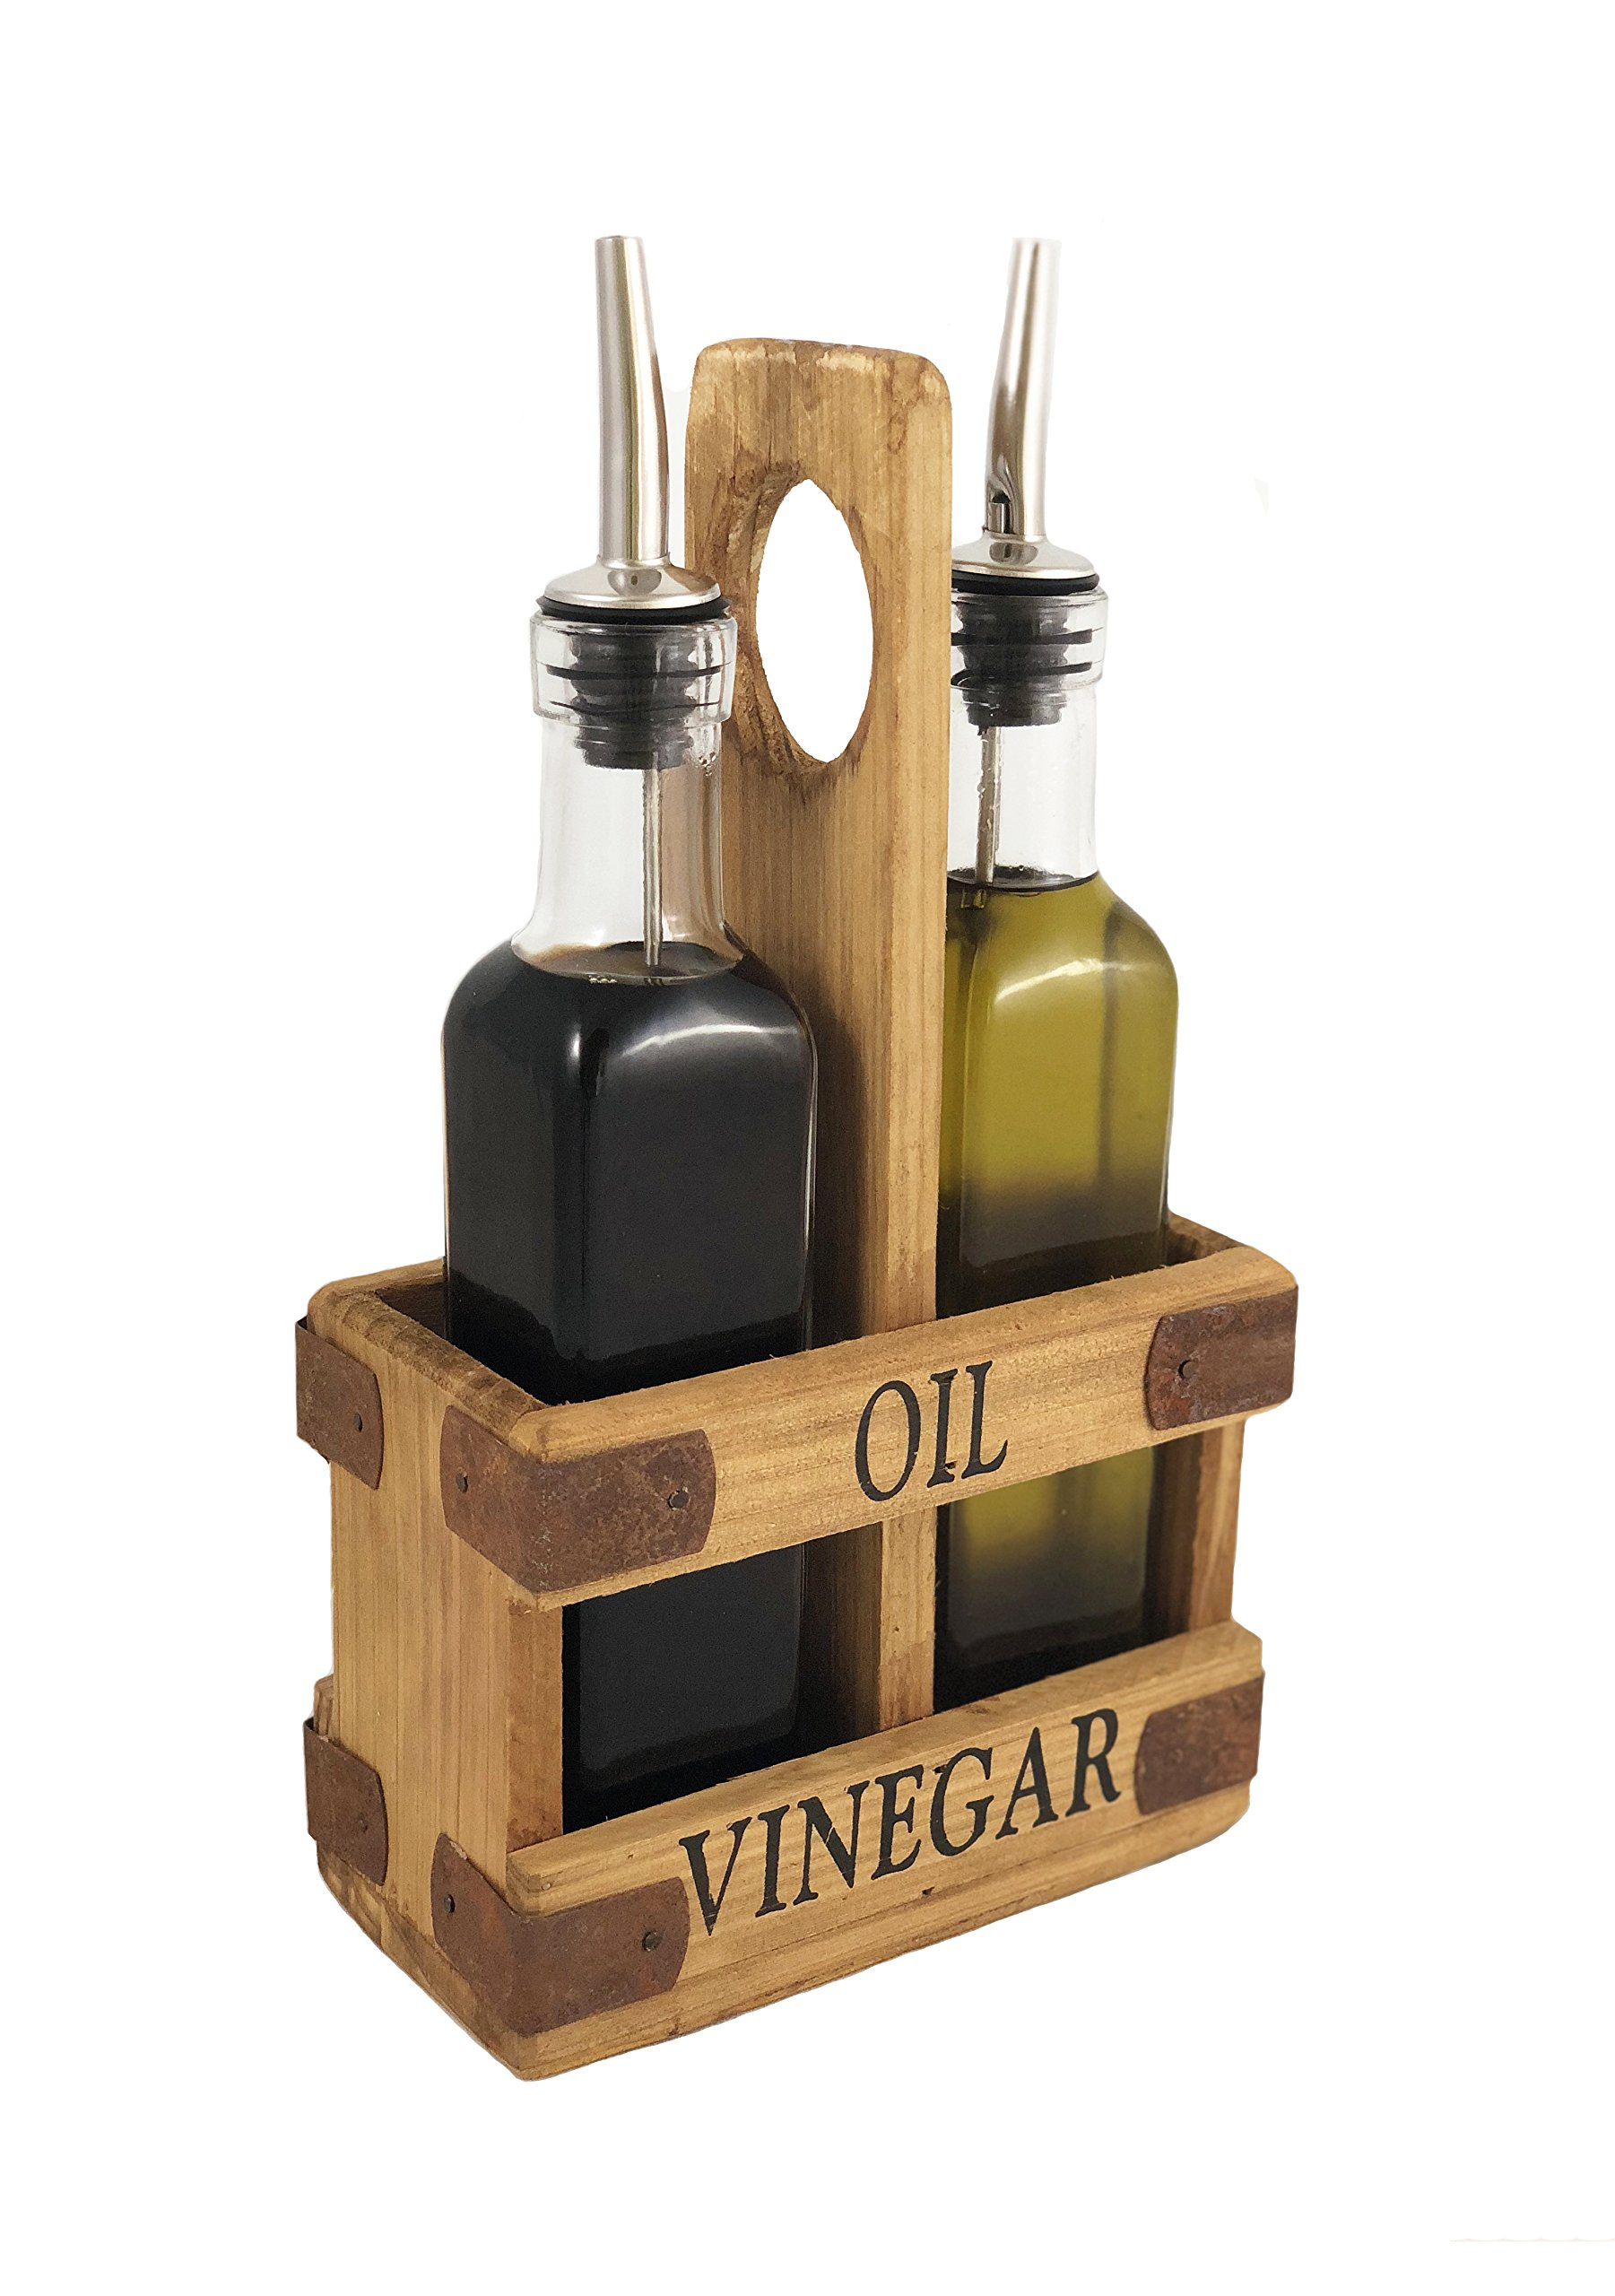 Autumn Alley Rustic Olive Oil & Vinegar Dispenser Set - Cruet Set with Wood Caddy